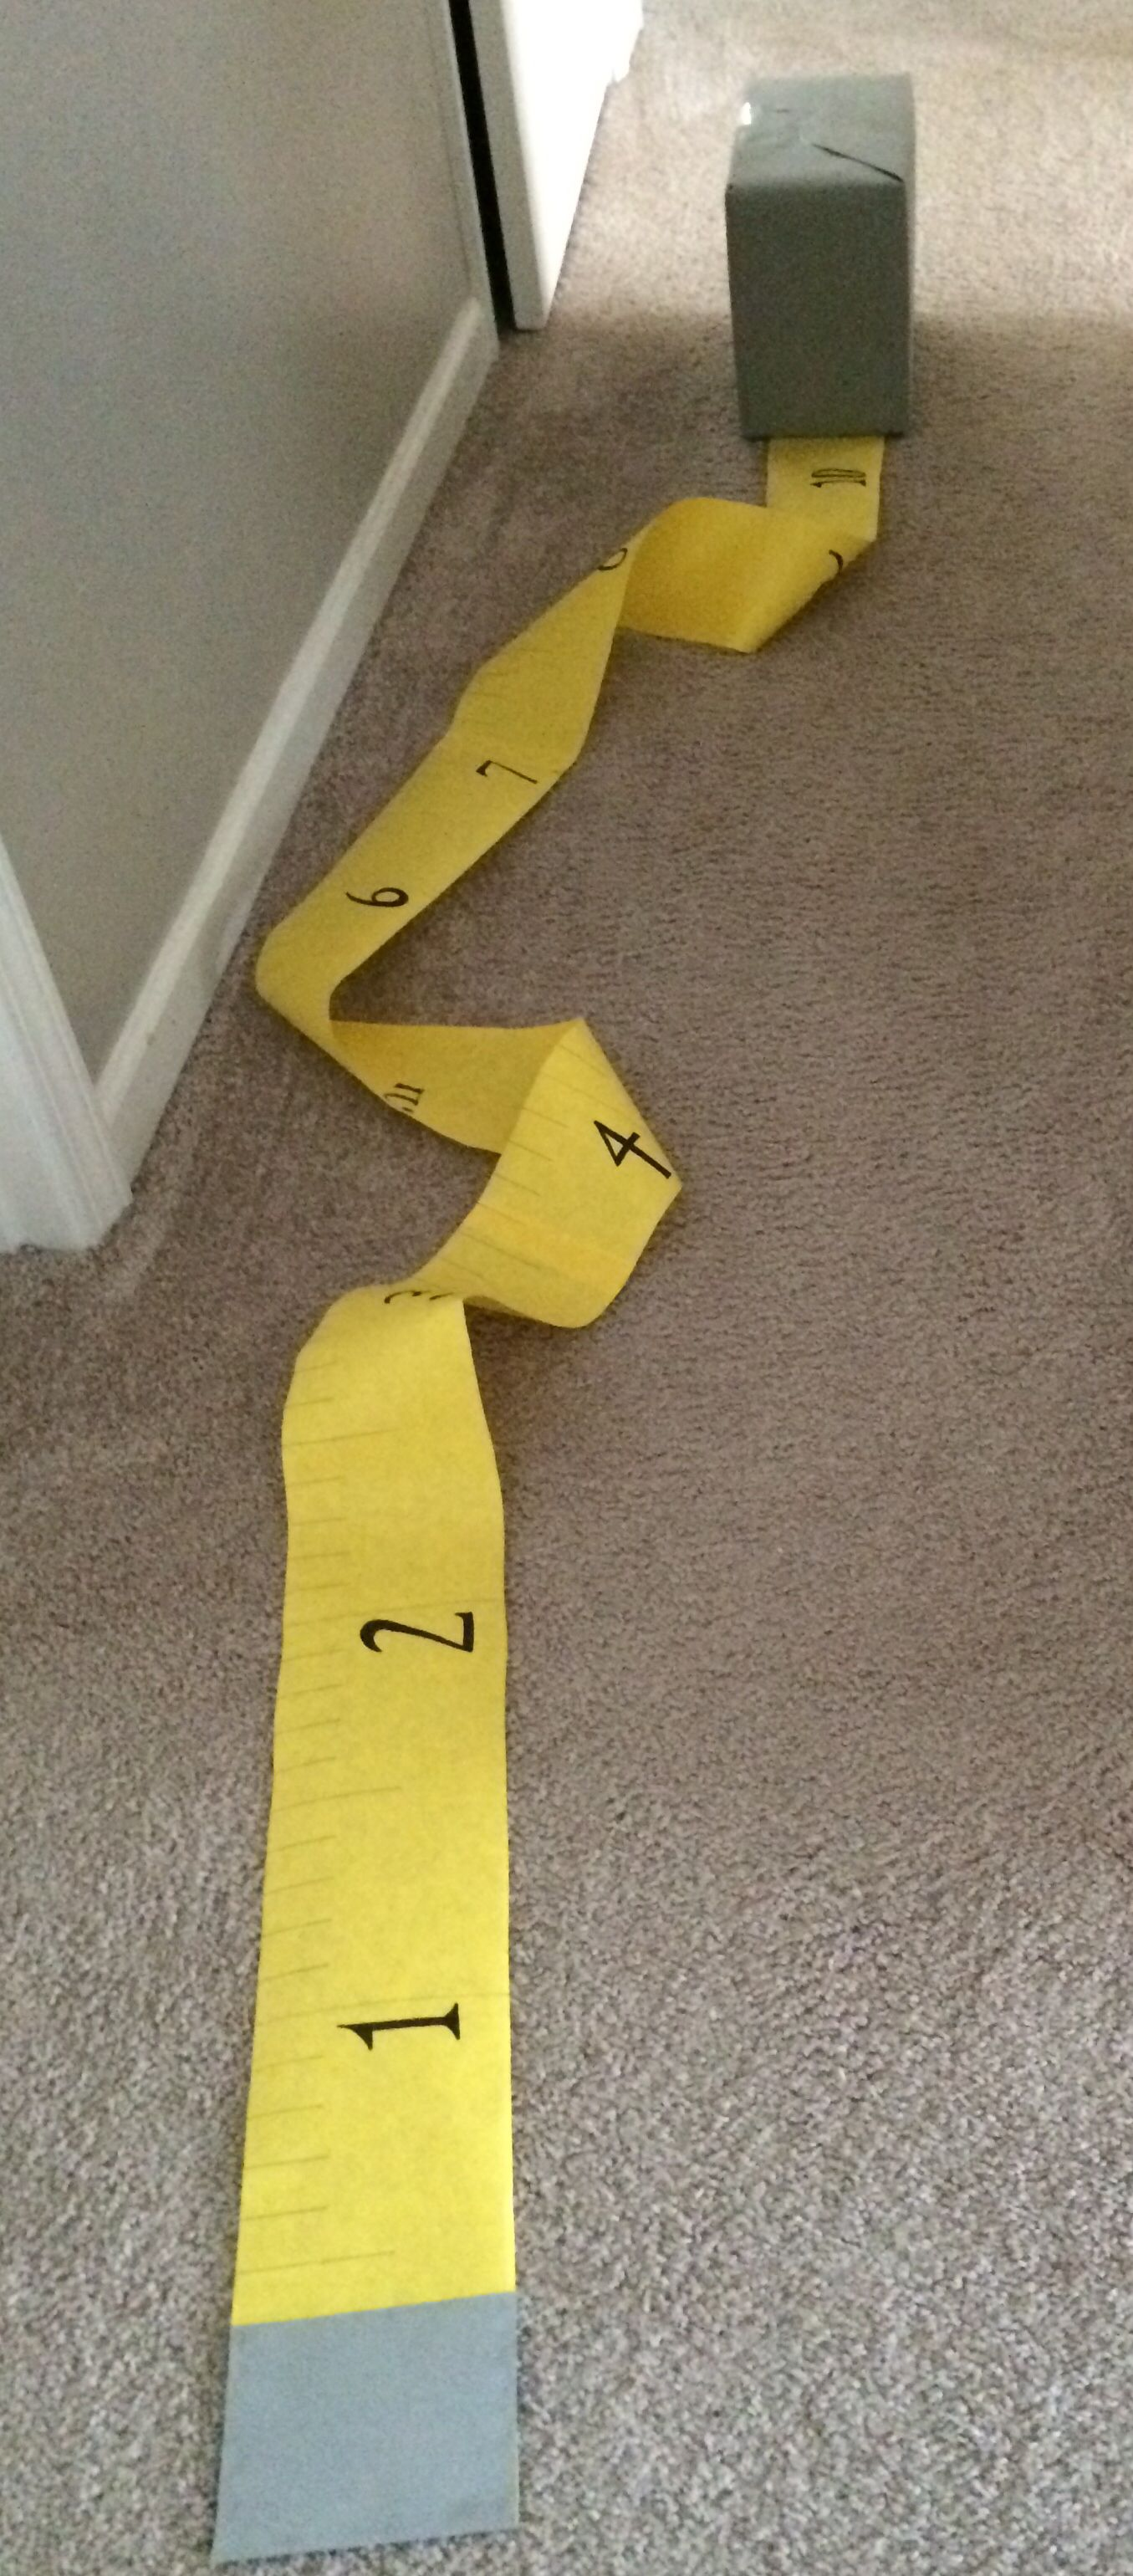 Oversized tape measure for VBS